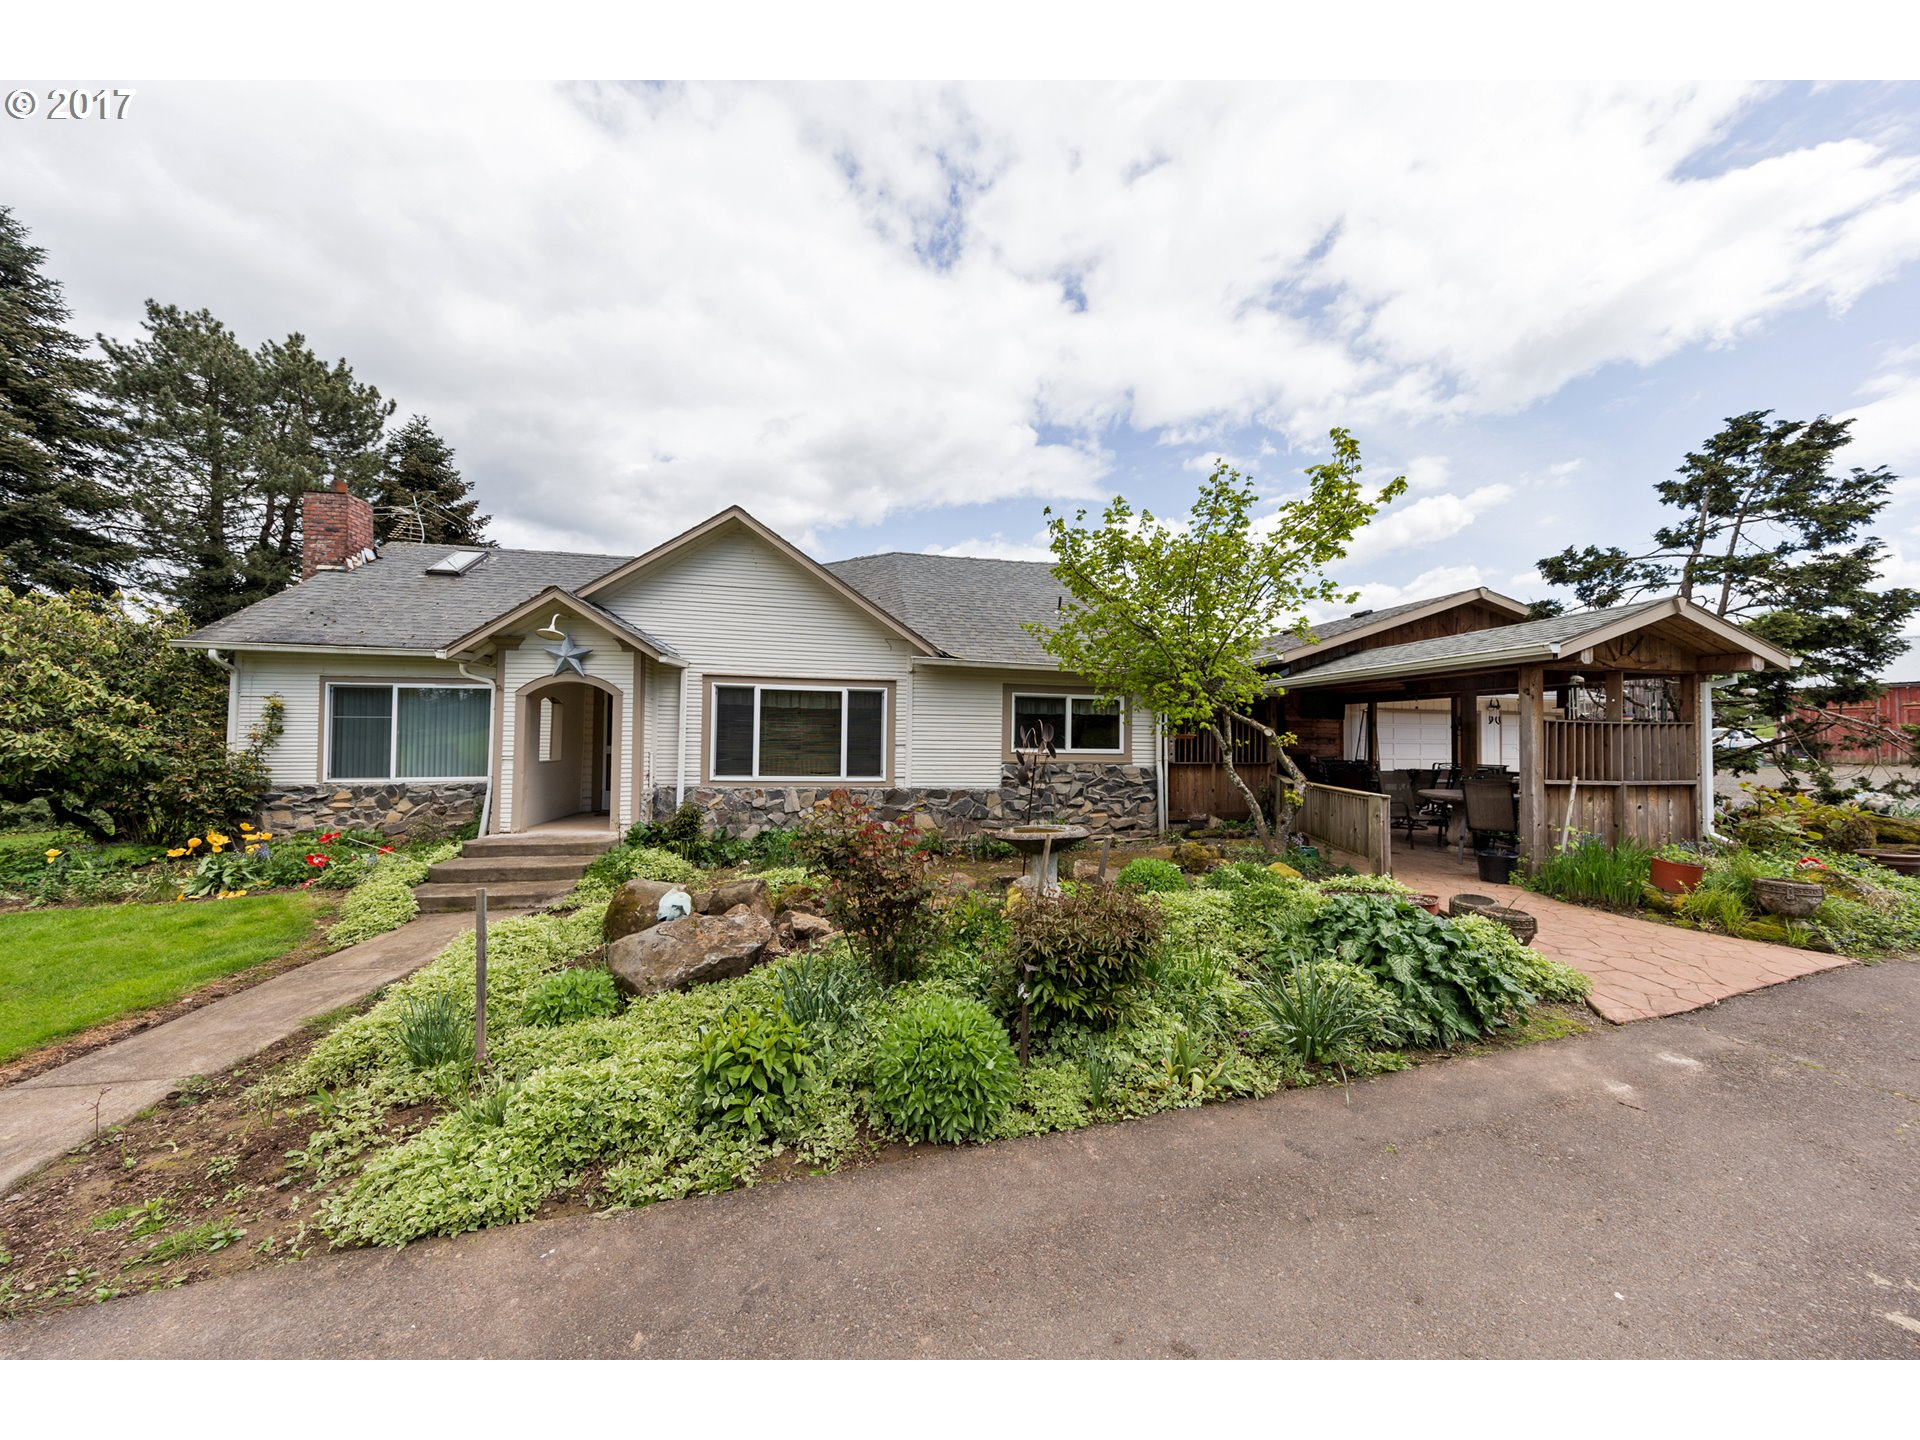 11852 S UNION HALL RD, Canby, OR 97013